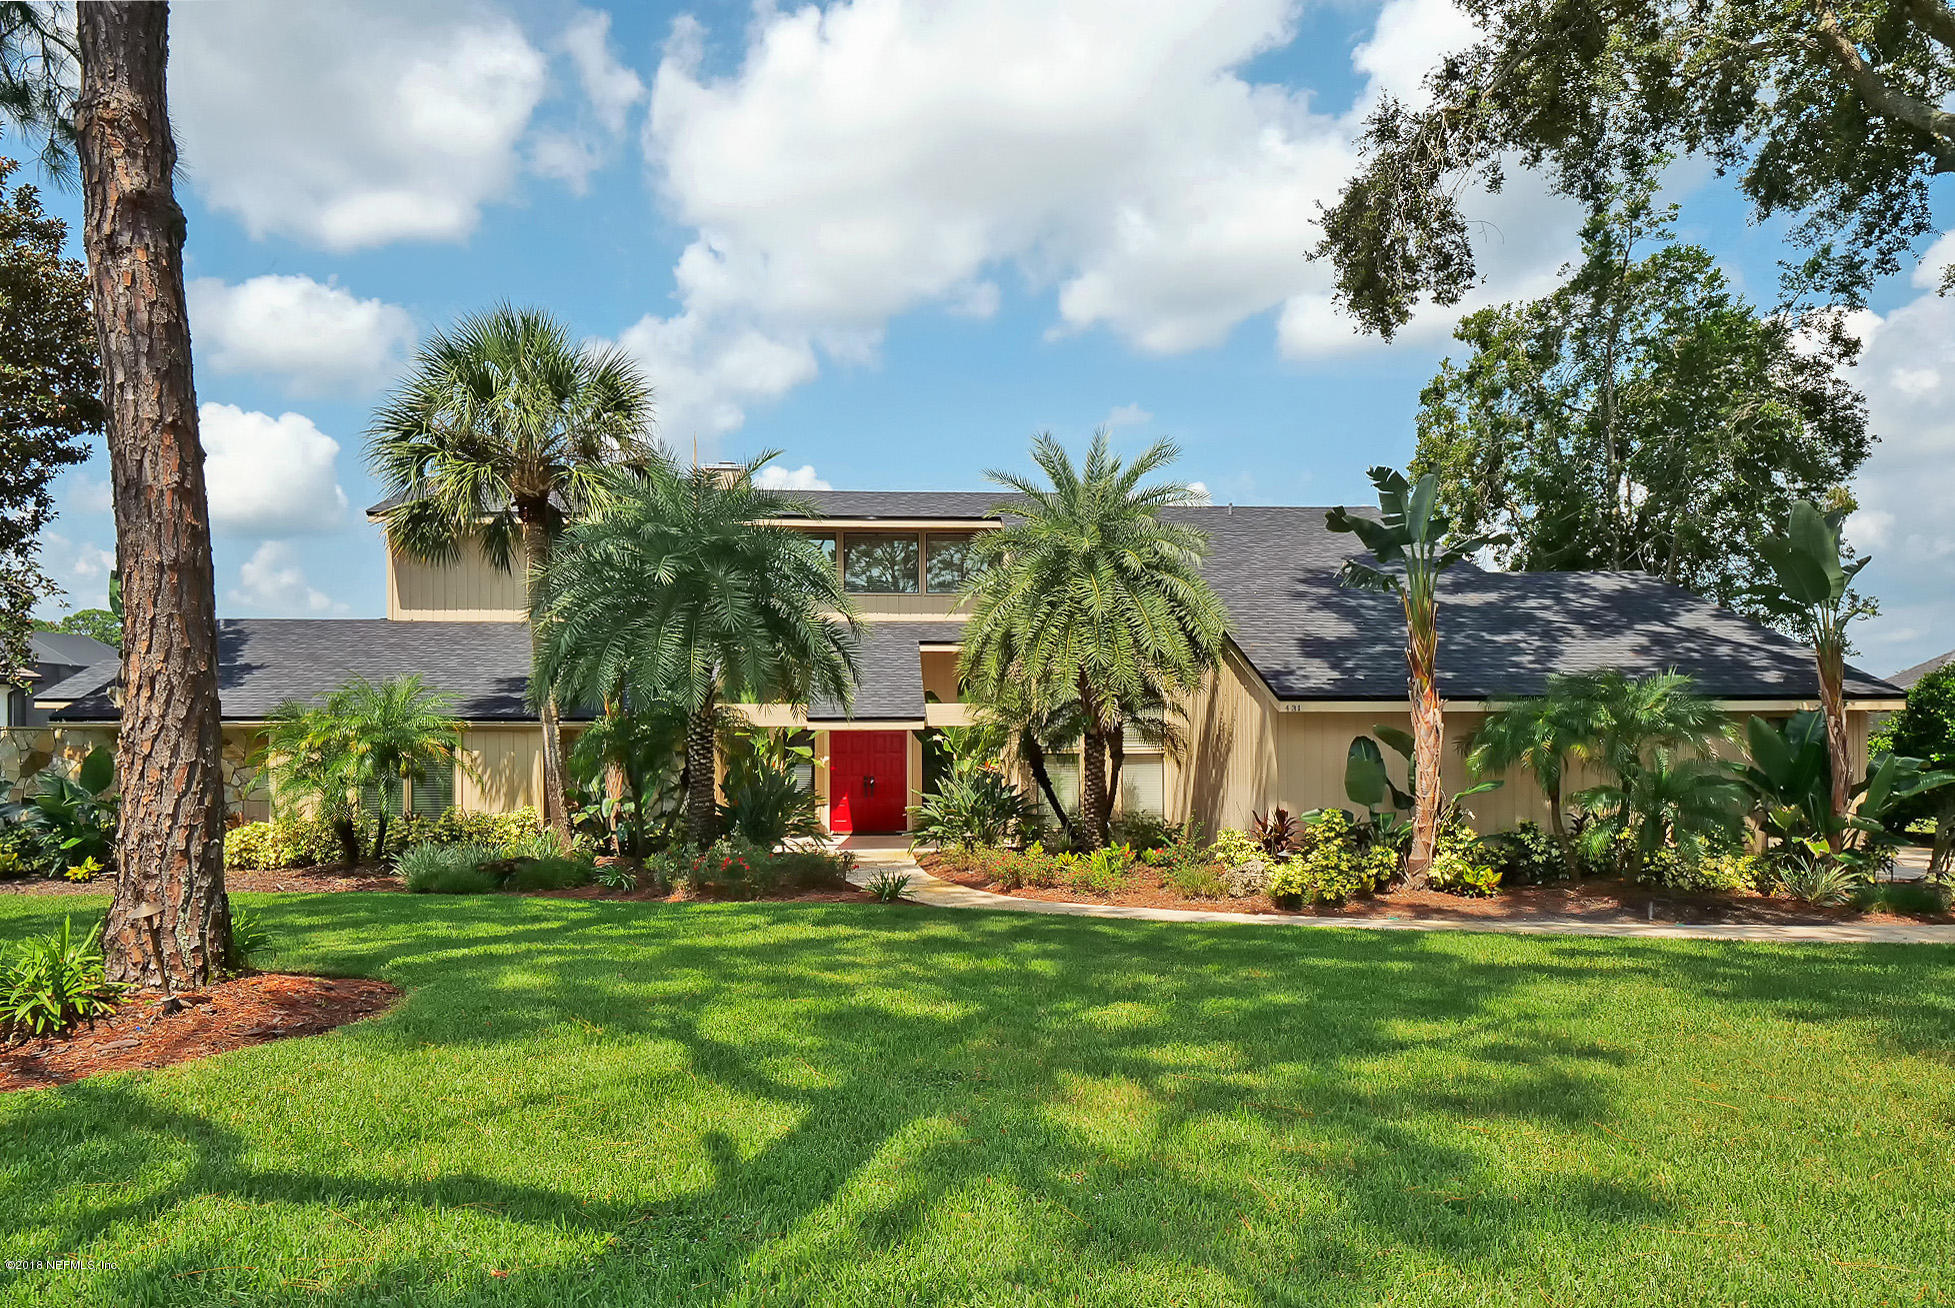 431 OSPREY, PONTE VEDRA BEACH, FLORIDA 32082, 3 Bedrooms Bedrooms, ,3 BathroomsBathrooms,Residential - single family,For sale,OSPREY,955405